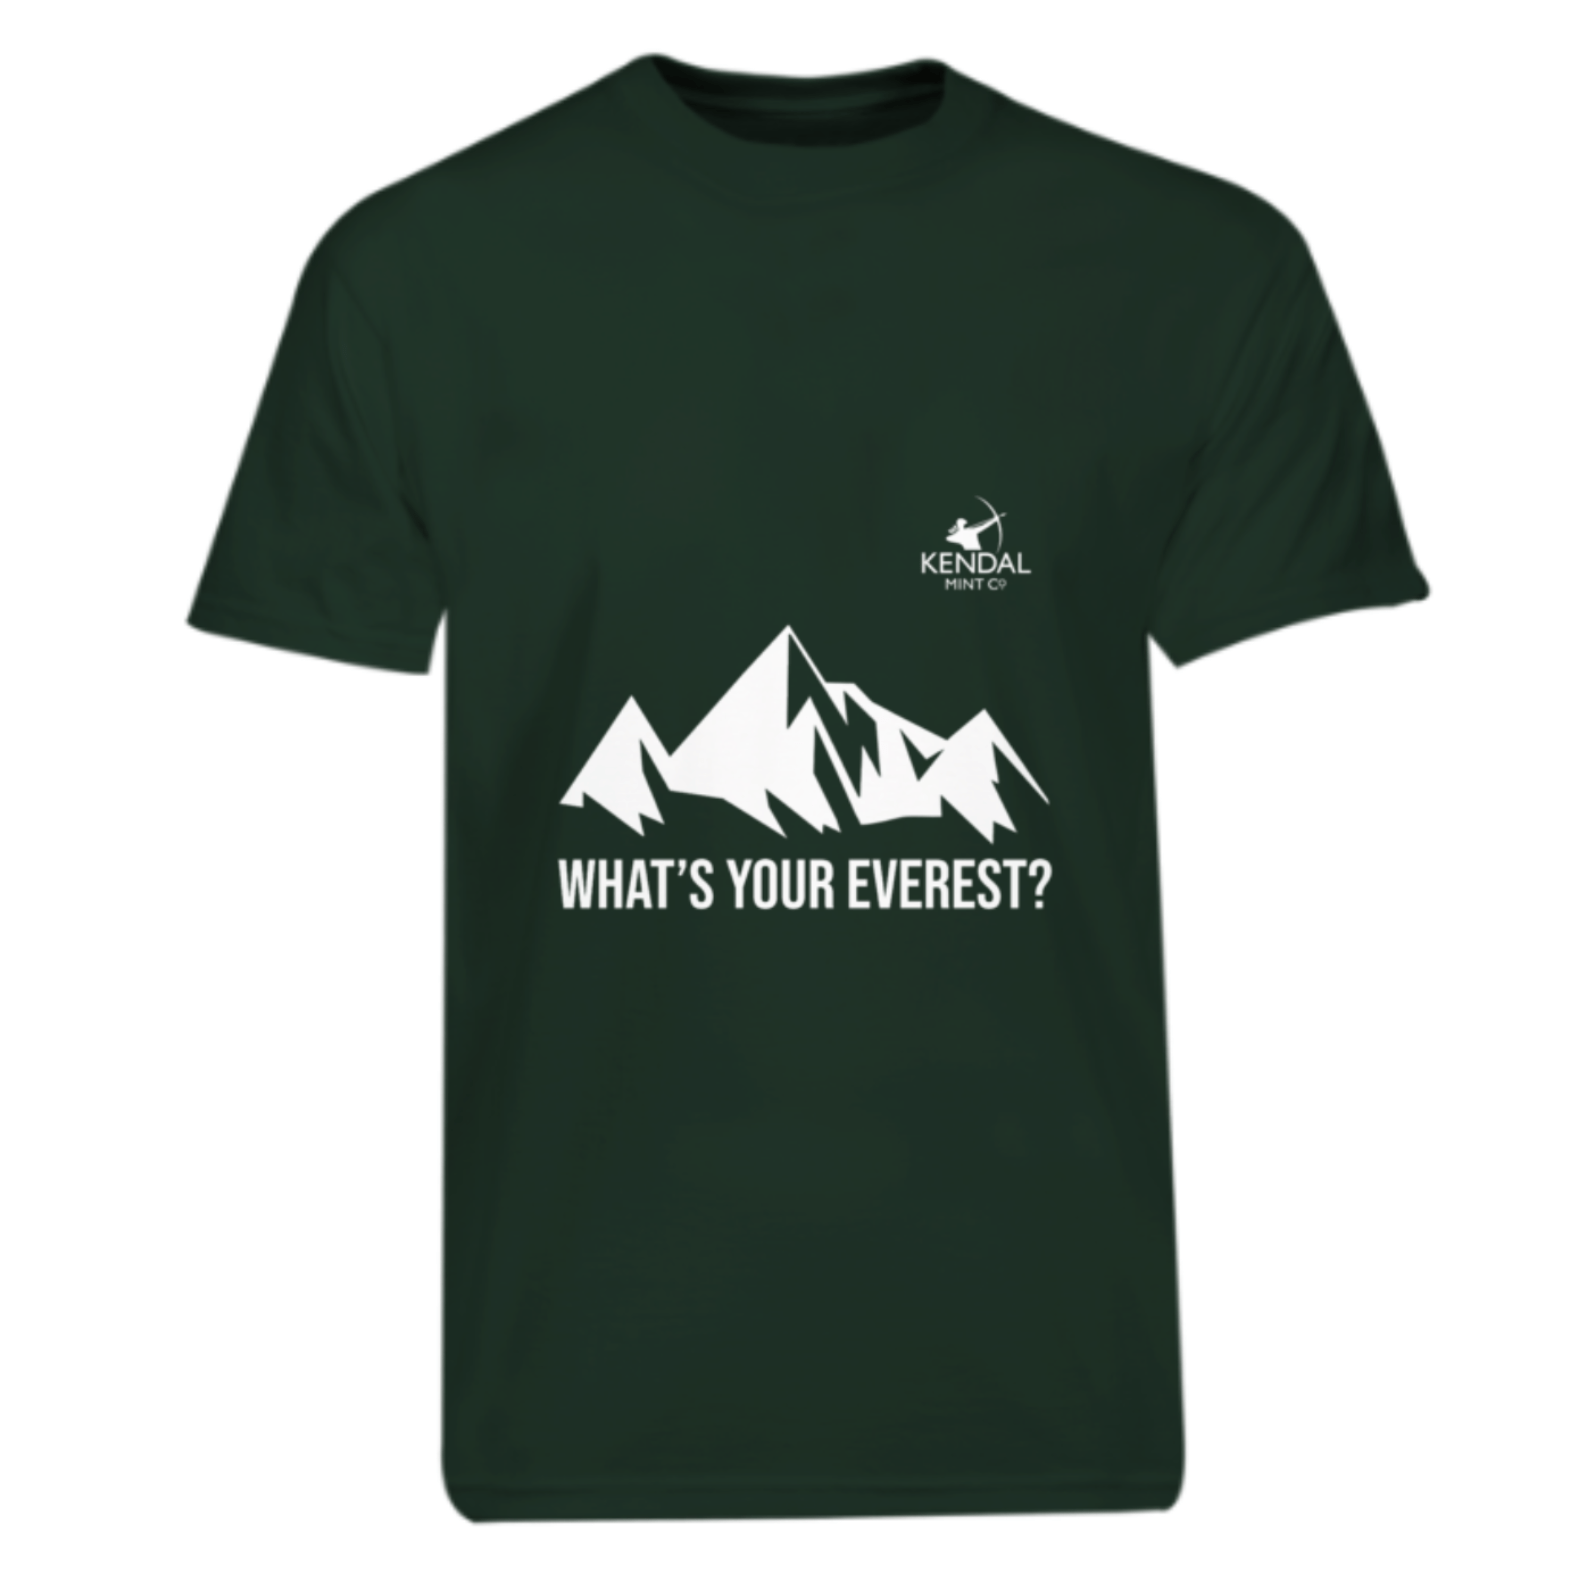 More than just a T-shirt… Conquer your Everest and raise £3 for our #MyEverest Charity Fund with every T-Shirt sold. A sustainably sourced, super-soft feel T made from 100% Certified Organic Cotton and Recycled Polyester. It's also Vegan/ PETA approved.